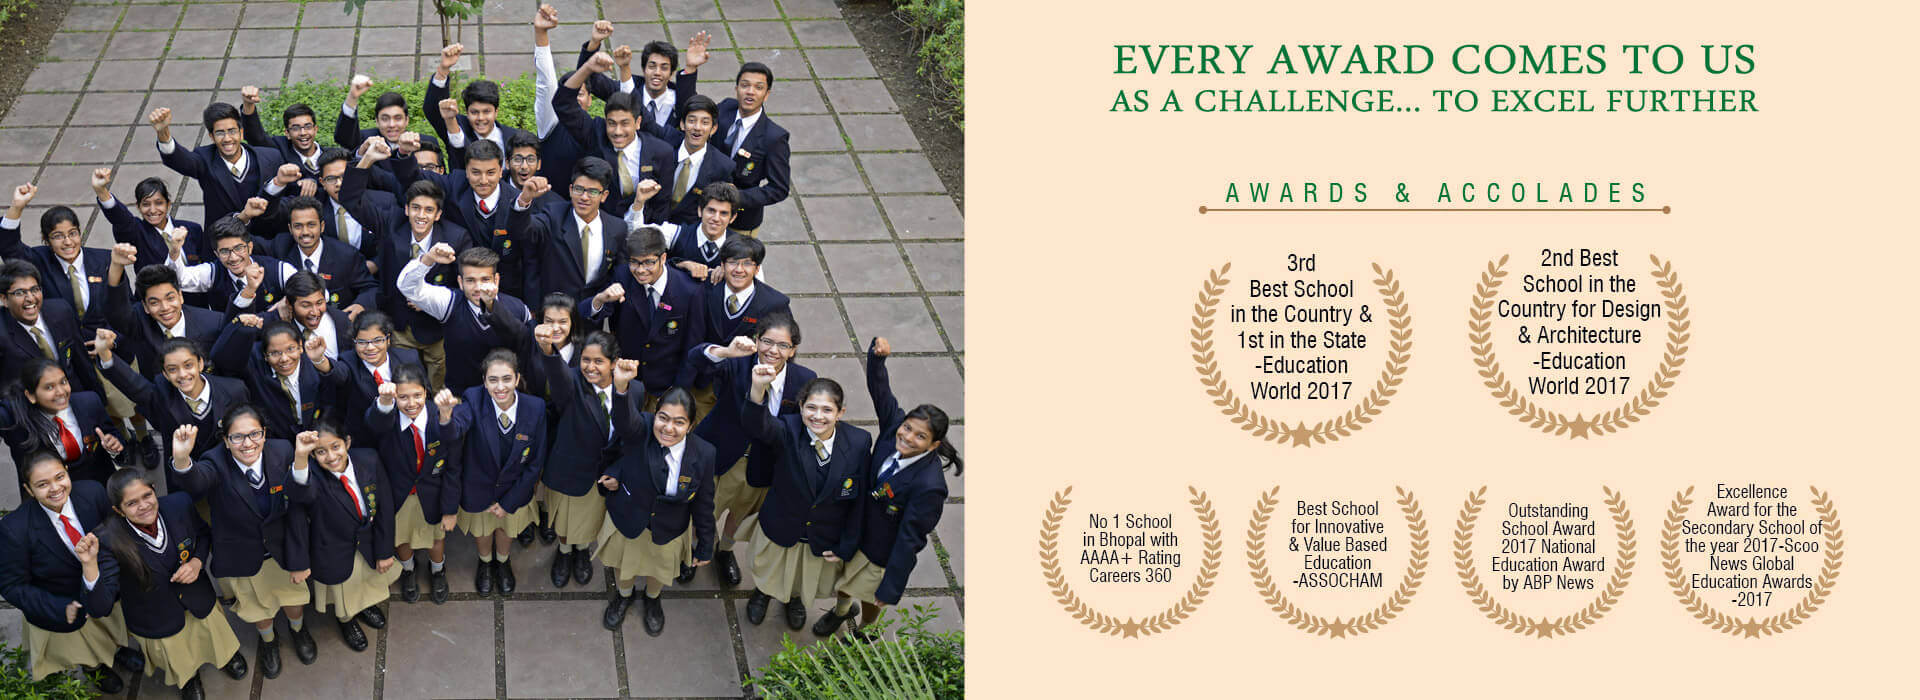 Sanskaar Valley School